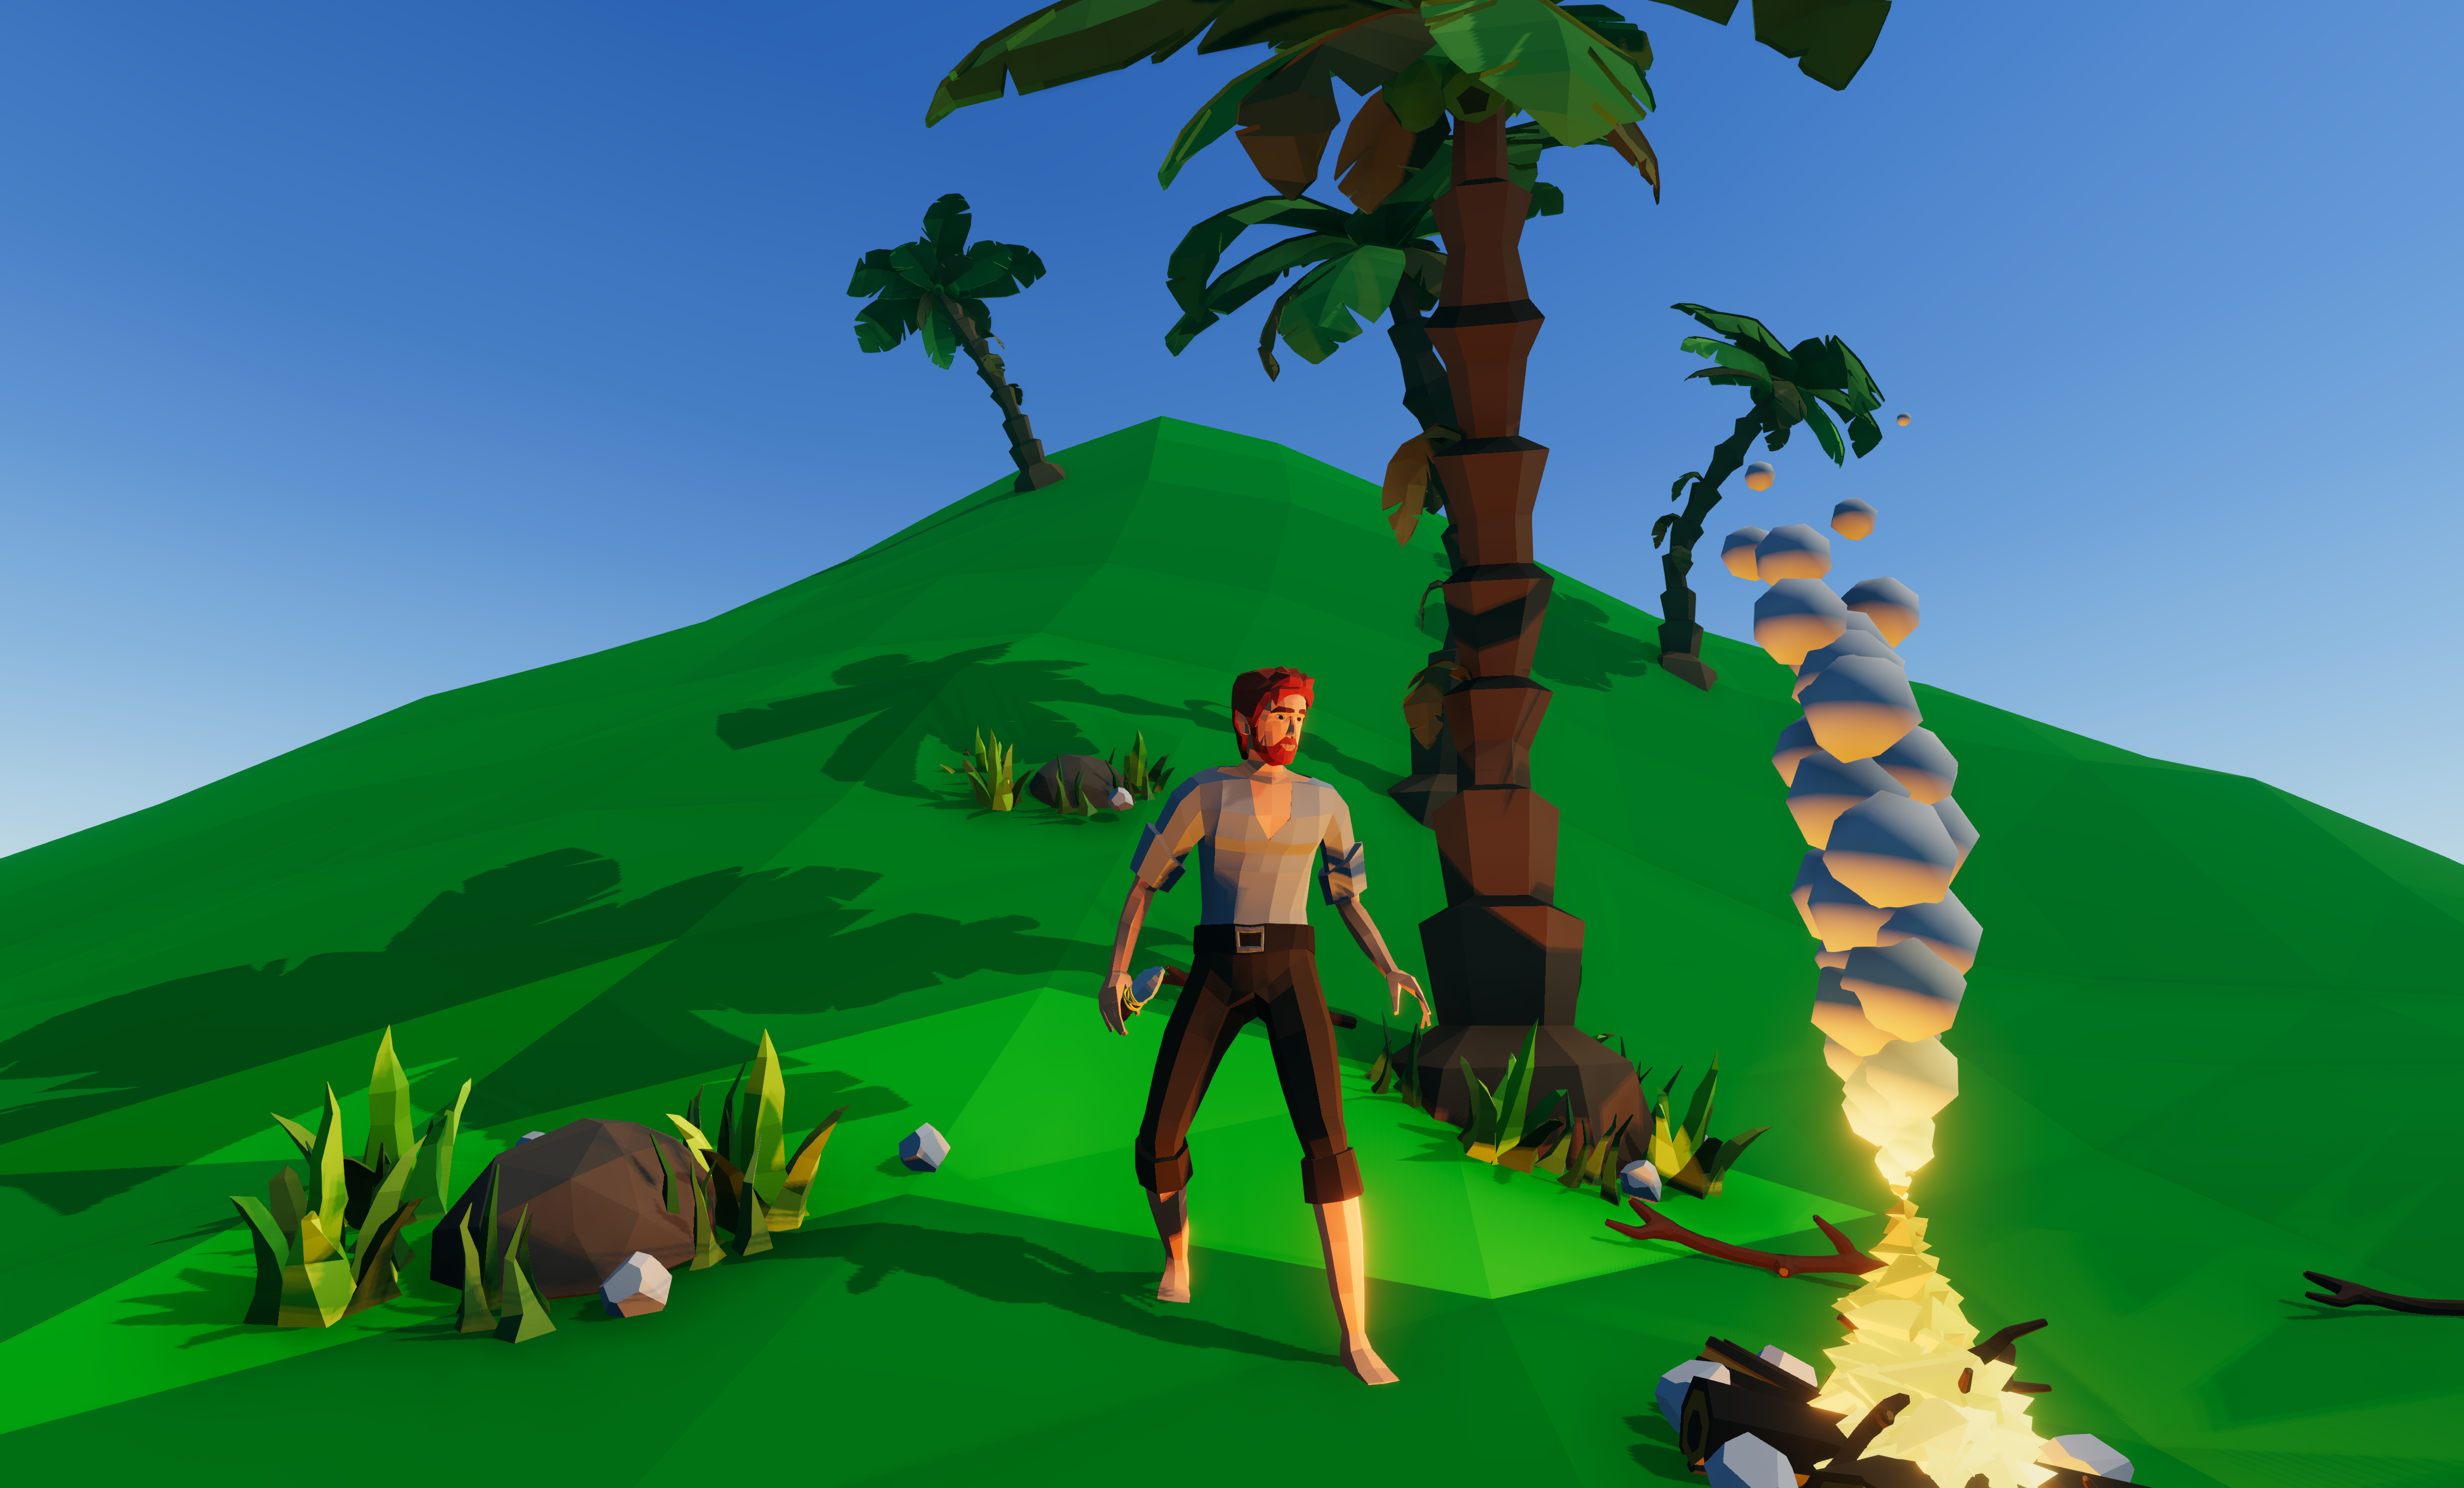 Low Poly Survival Adventure Game